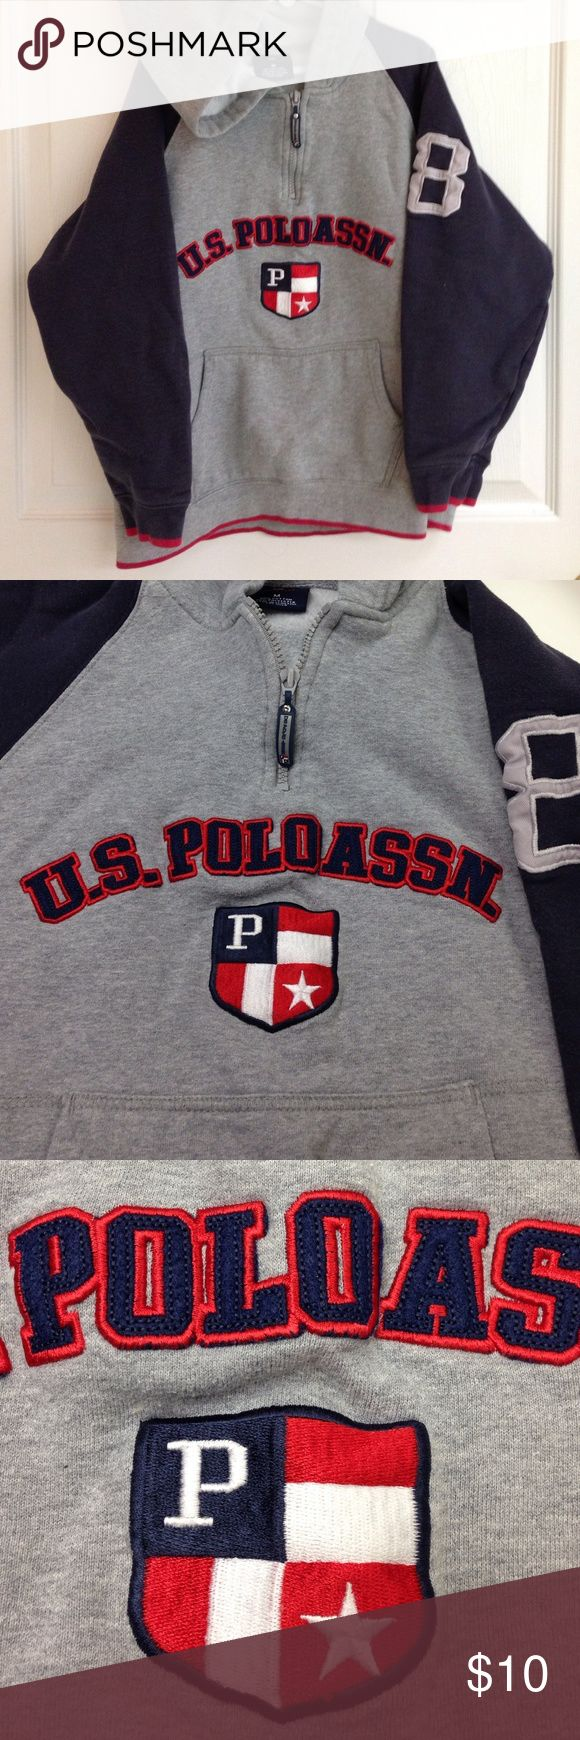 U.S. POLO ASSN Sweatshirt with Hood US Polo Assn hoodie sweatshirt with front zipper. Gray with blue and red. Blue on sleeves is slightly worn and faded but sweatshirt is in good condition. 80% cotton 20% polyester U.S. Polo Assn. Shirts & Tops Sweatshirts & Hoodies